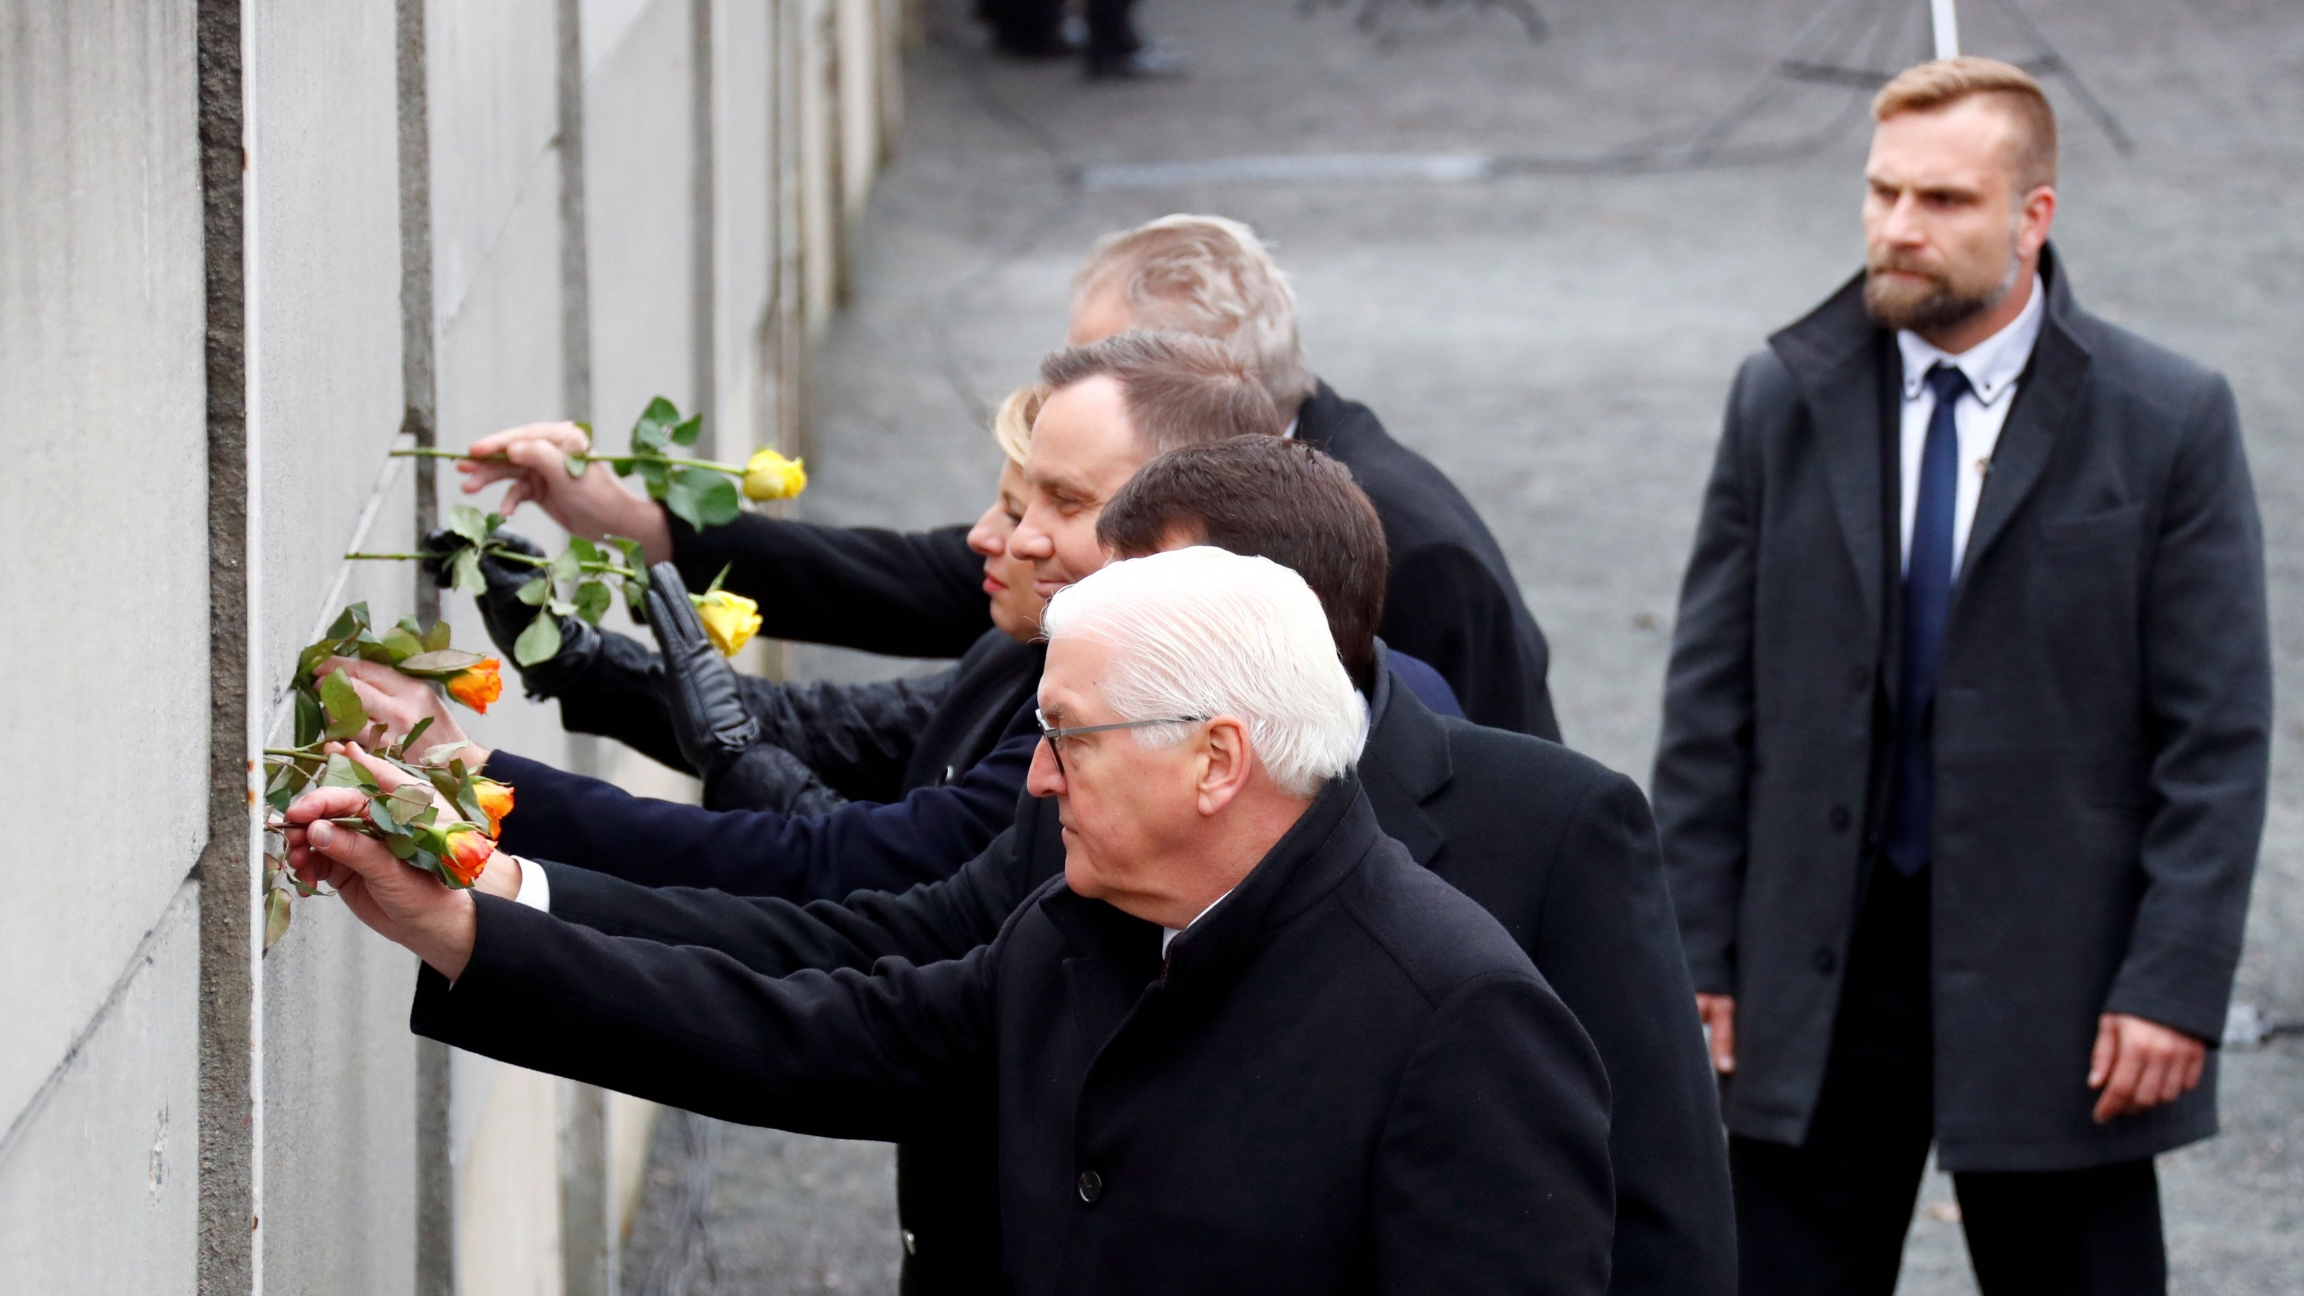 German President Frank-Walter Steinmeier, Hungary's President Janos Ader, Poland's President Andrzej Duda, Slovakia's President Zuzana Caputova and Czech Republic's President Milos Zeman place roses into a gap at the Wall memorial during a ceremony markin